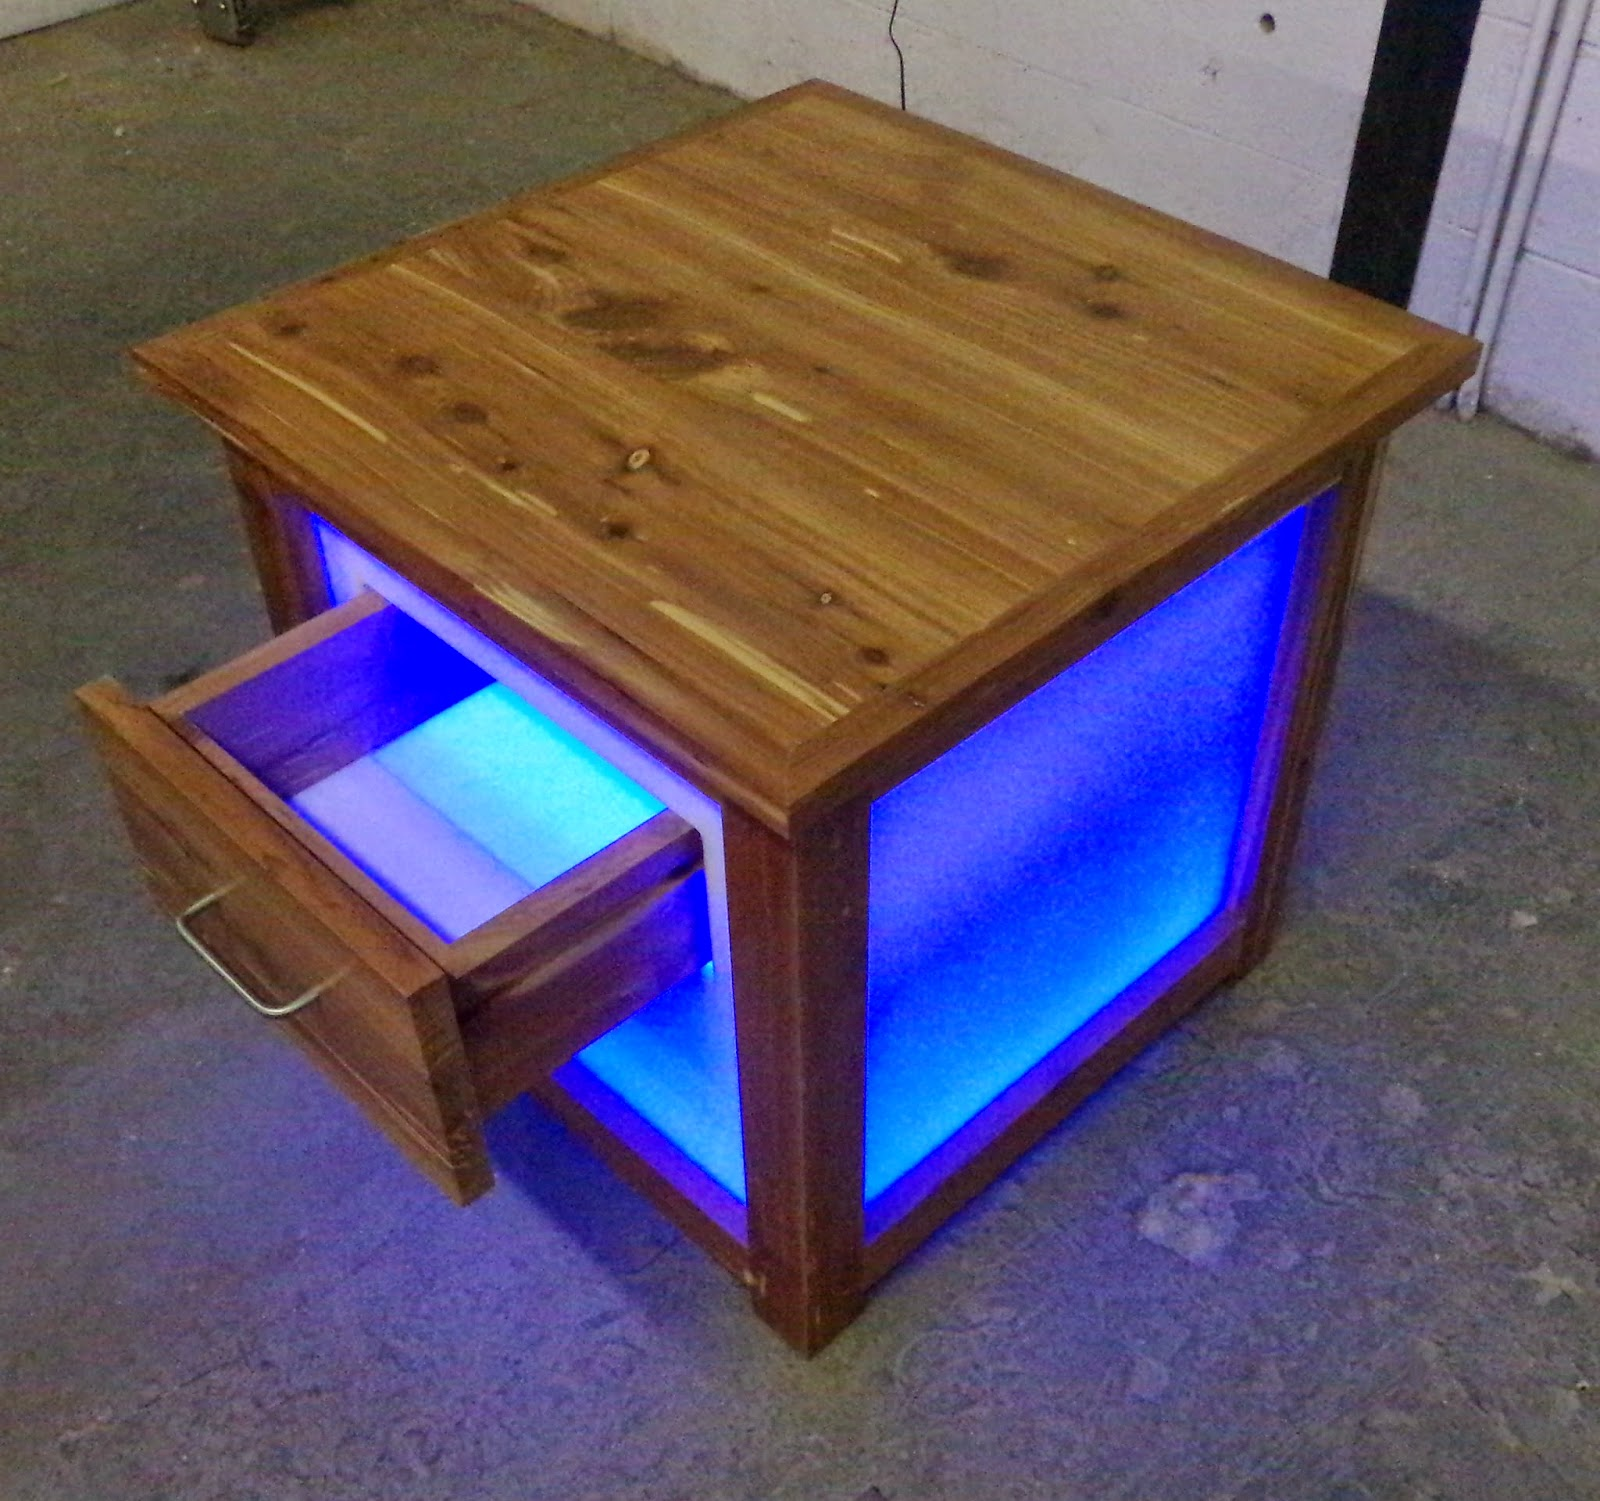 Led furniture blog page 2 of 5 customized designs -  Custom Designs Behind Us Check Out Our Site At Www Barchefs Com For All Of Your Light Up Table Design Needs Here Are A Few More Random Shots To Enjoy